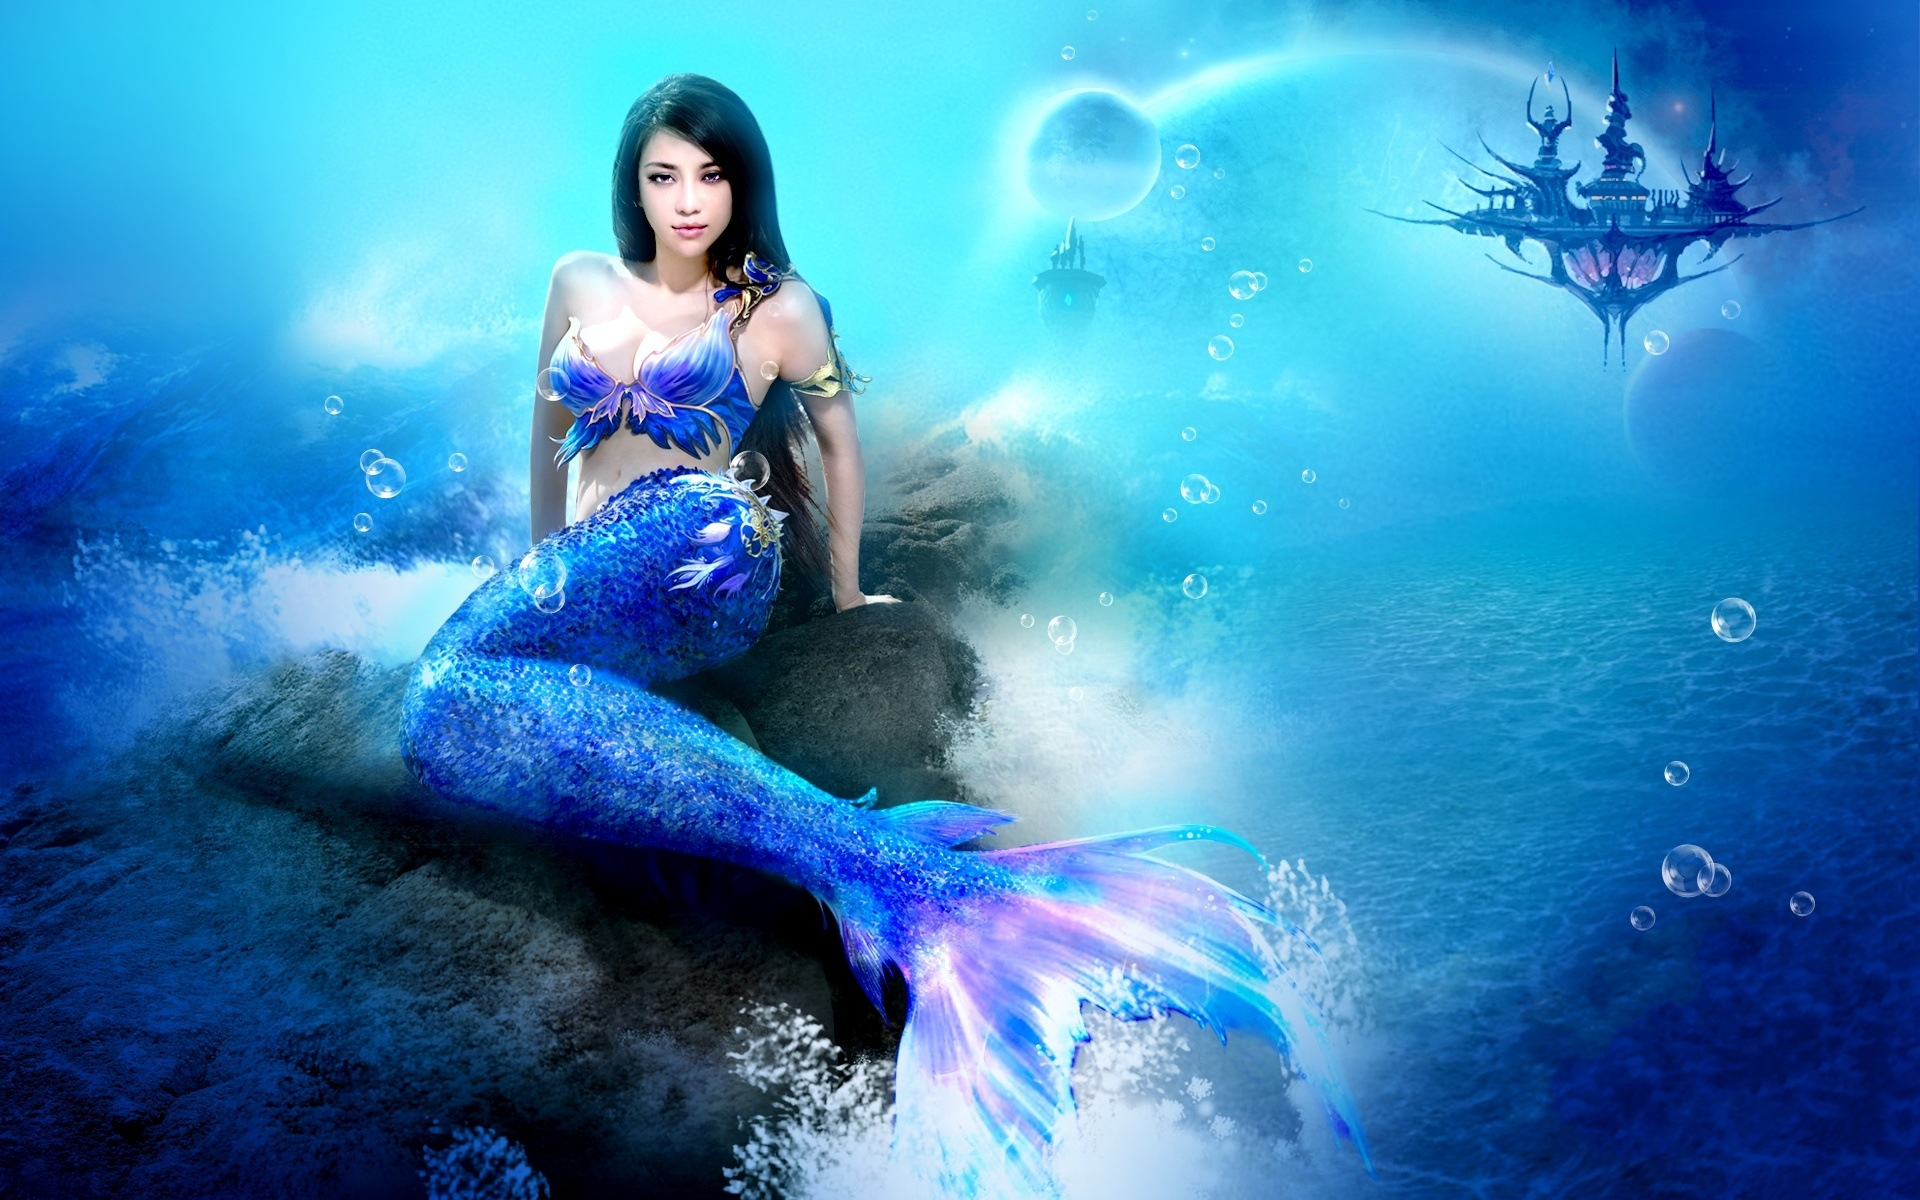 fantasy art mermaid women cg digital